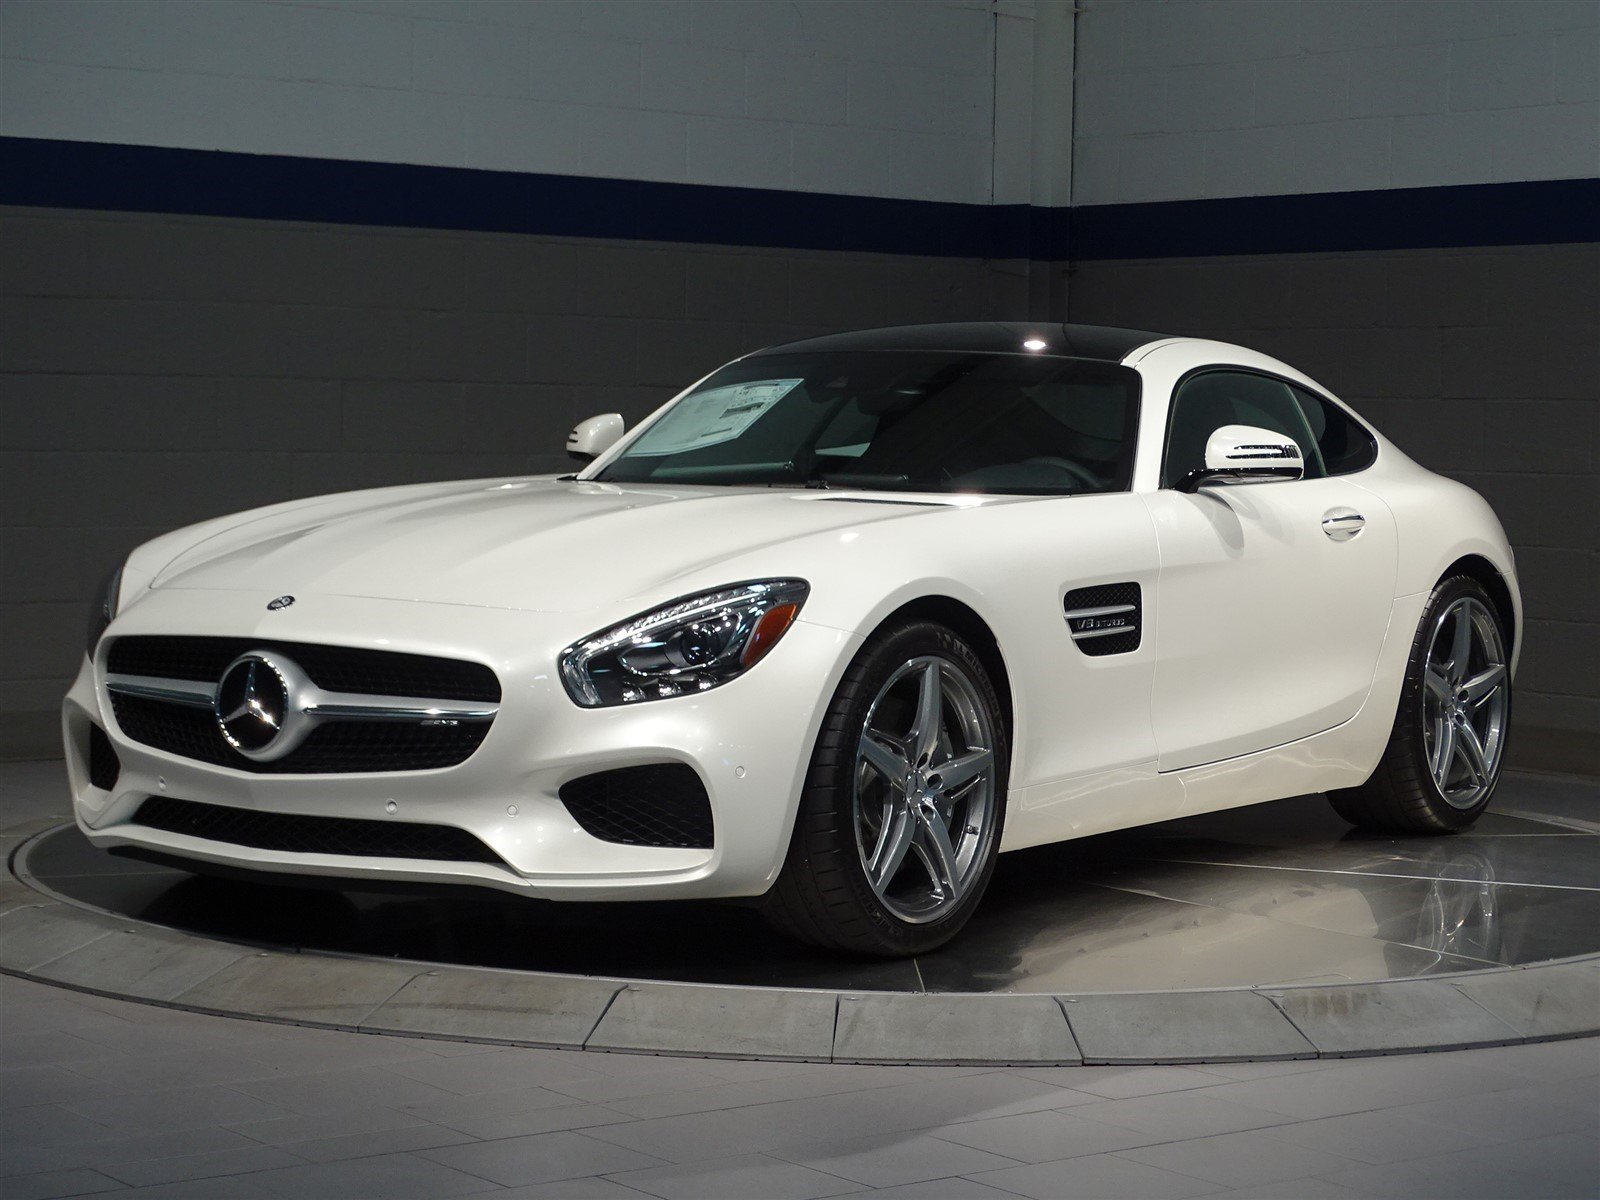 New 2017 mercedes benz amg gt coupe in rockville centre for 2017 mercedes benz amg gt msrp